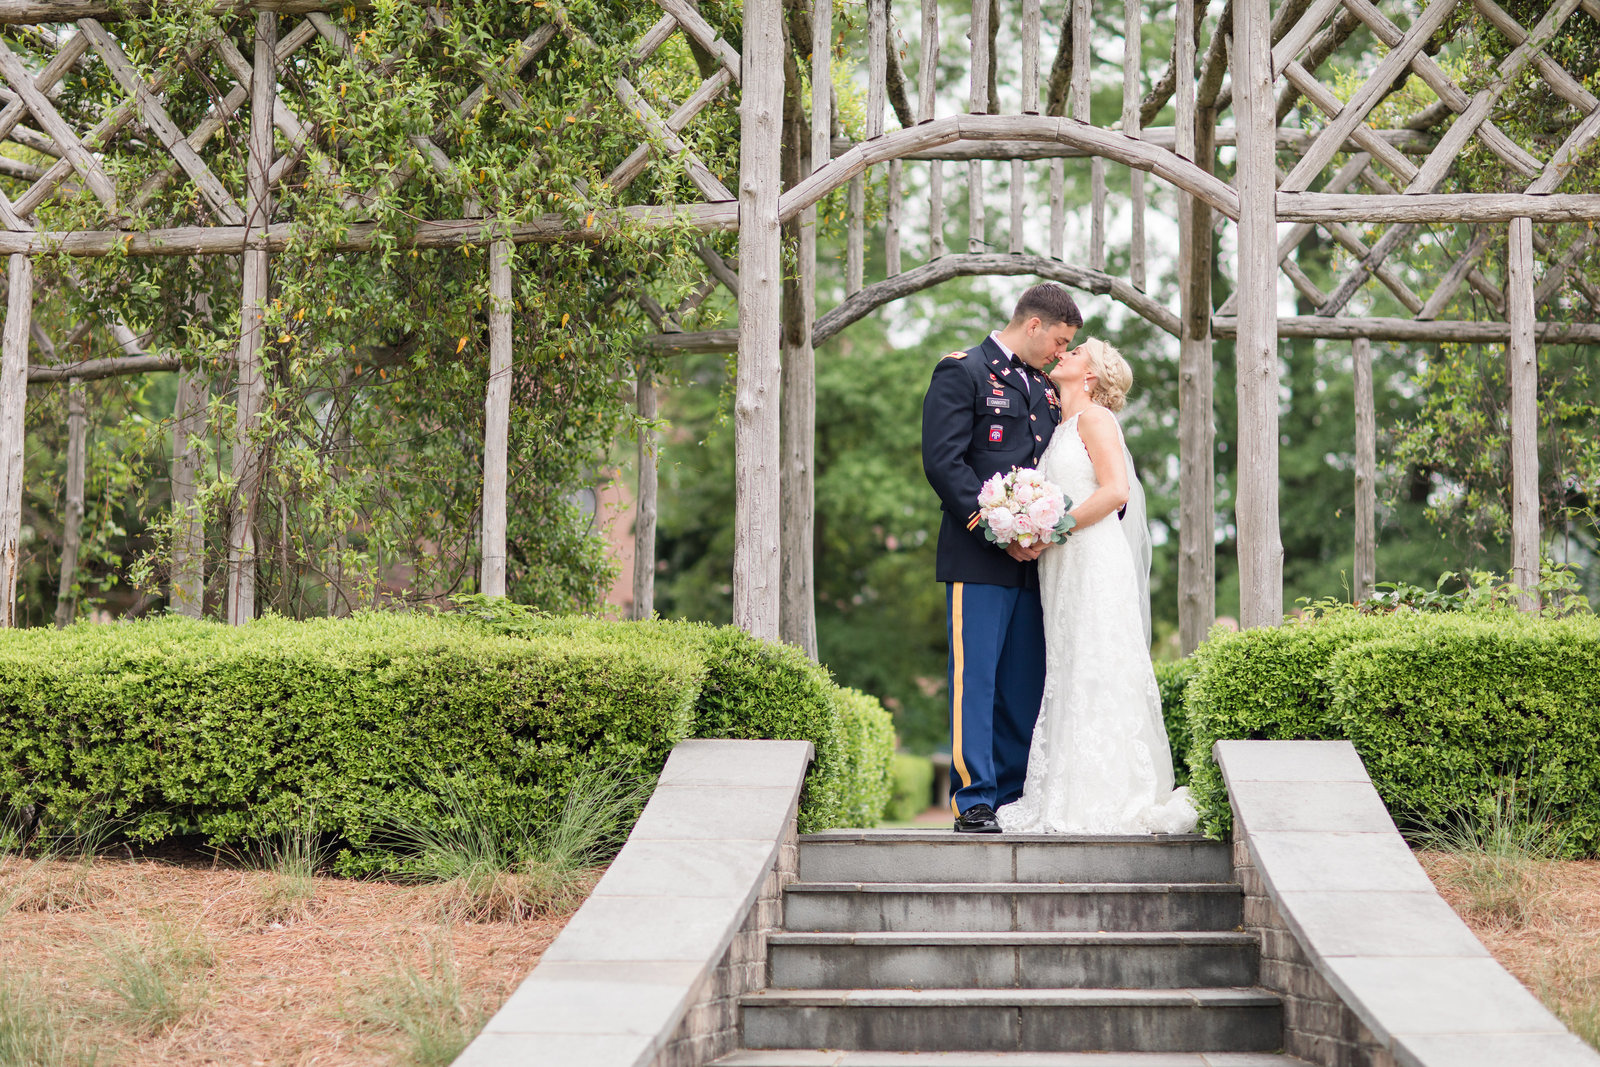 Pinehurst Arboretum Wedding Day, Pinehurst, NC